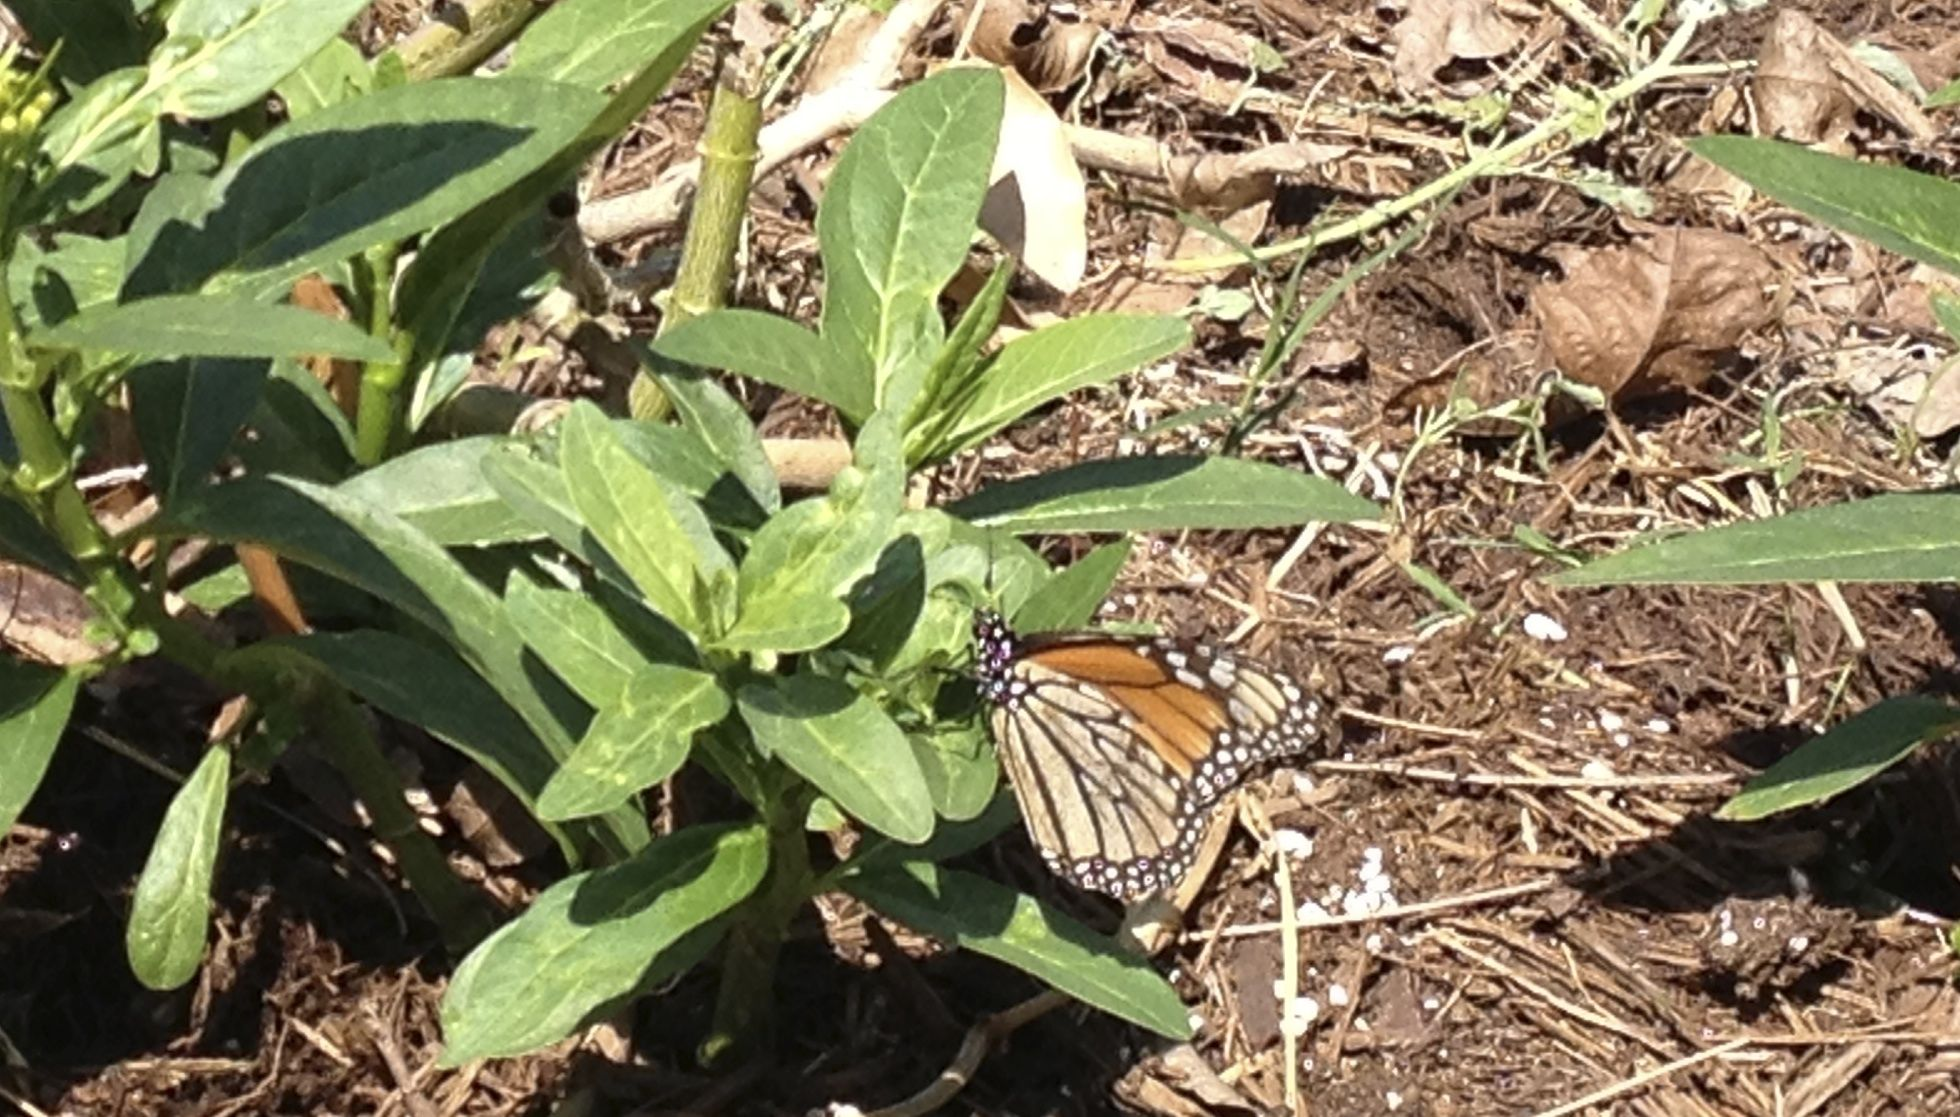 FOS Monarch butterfly